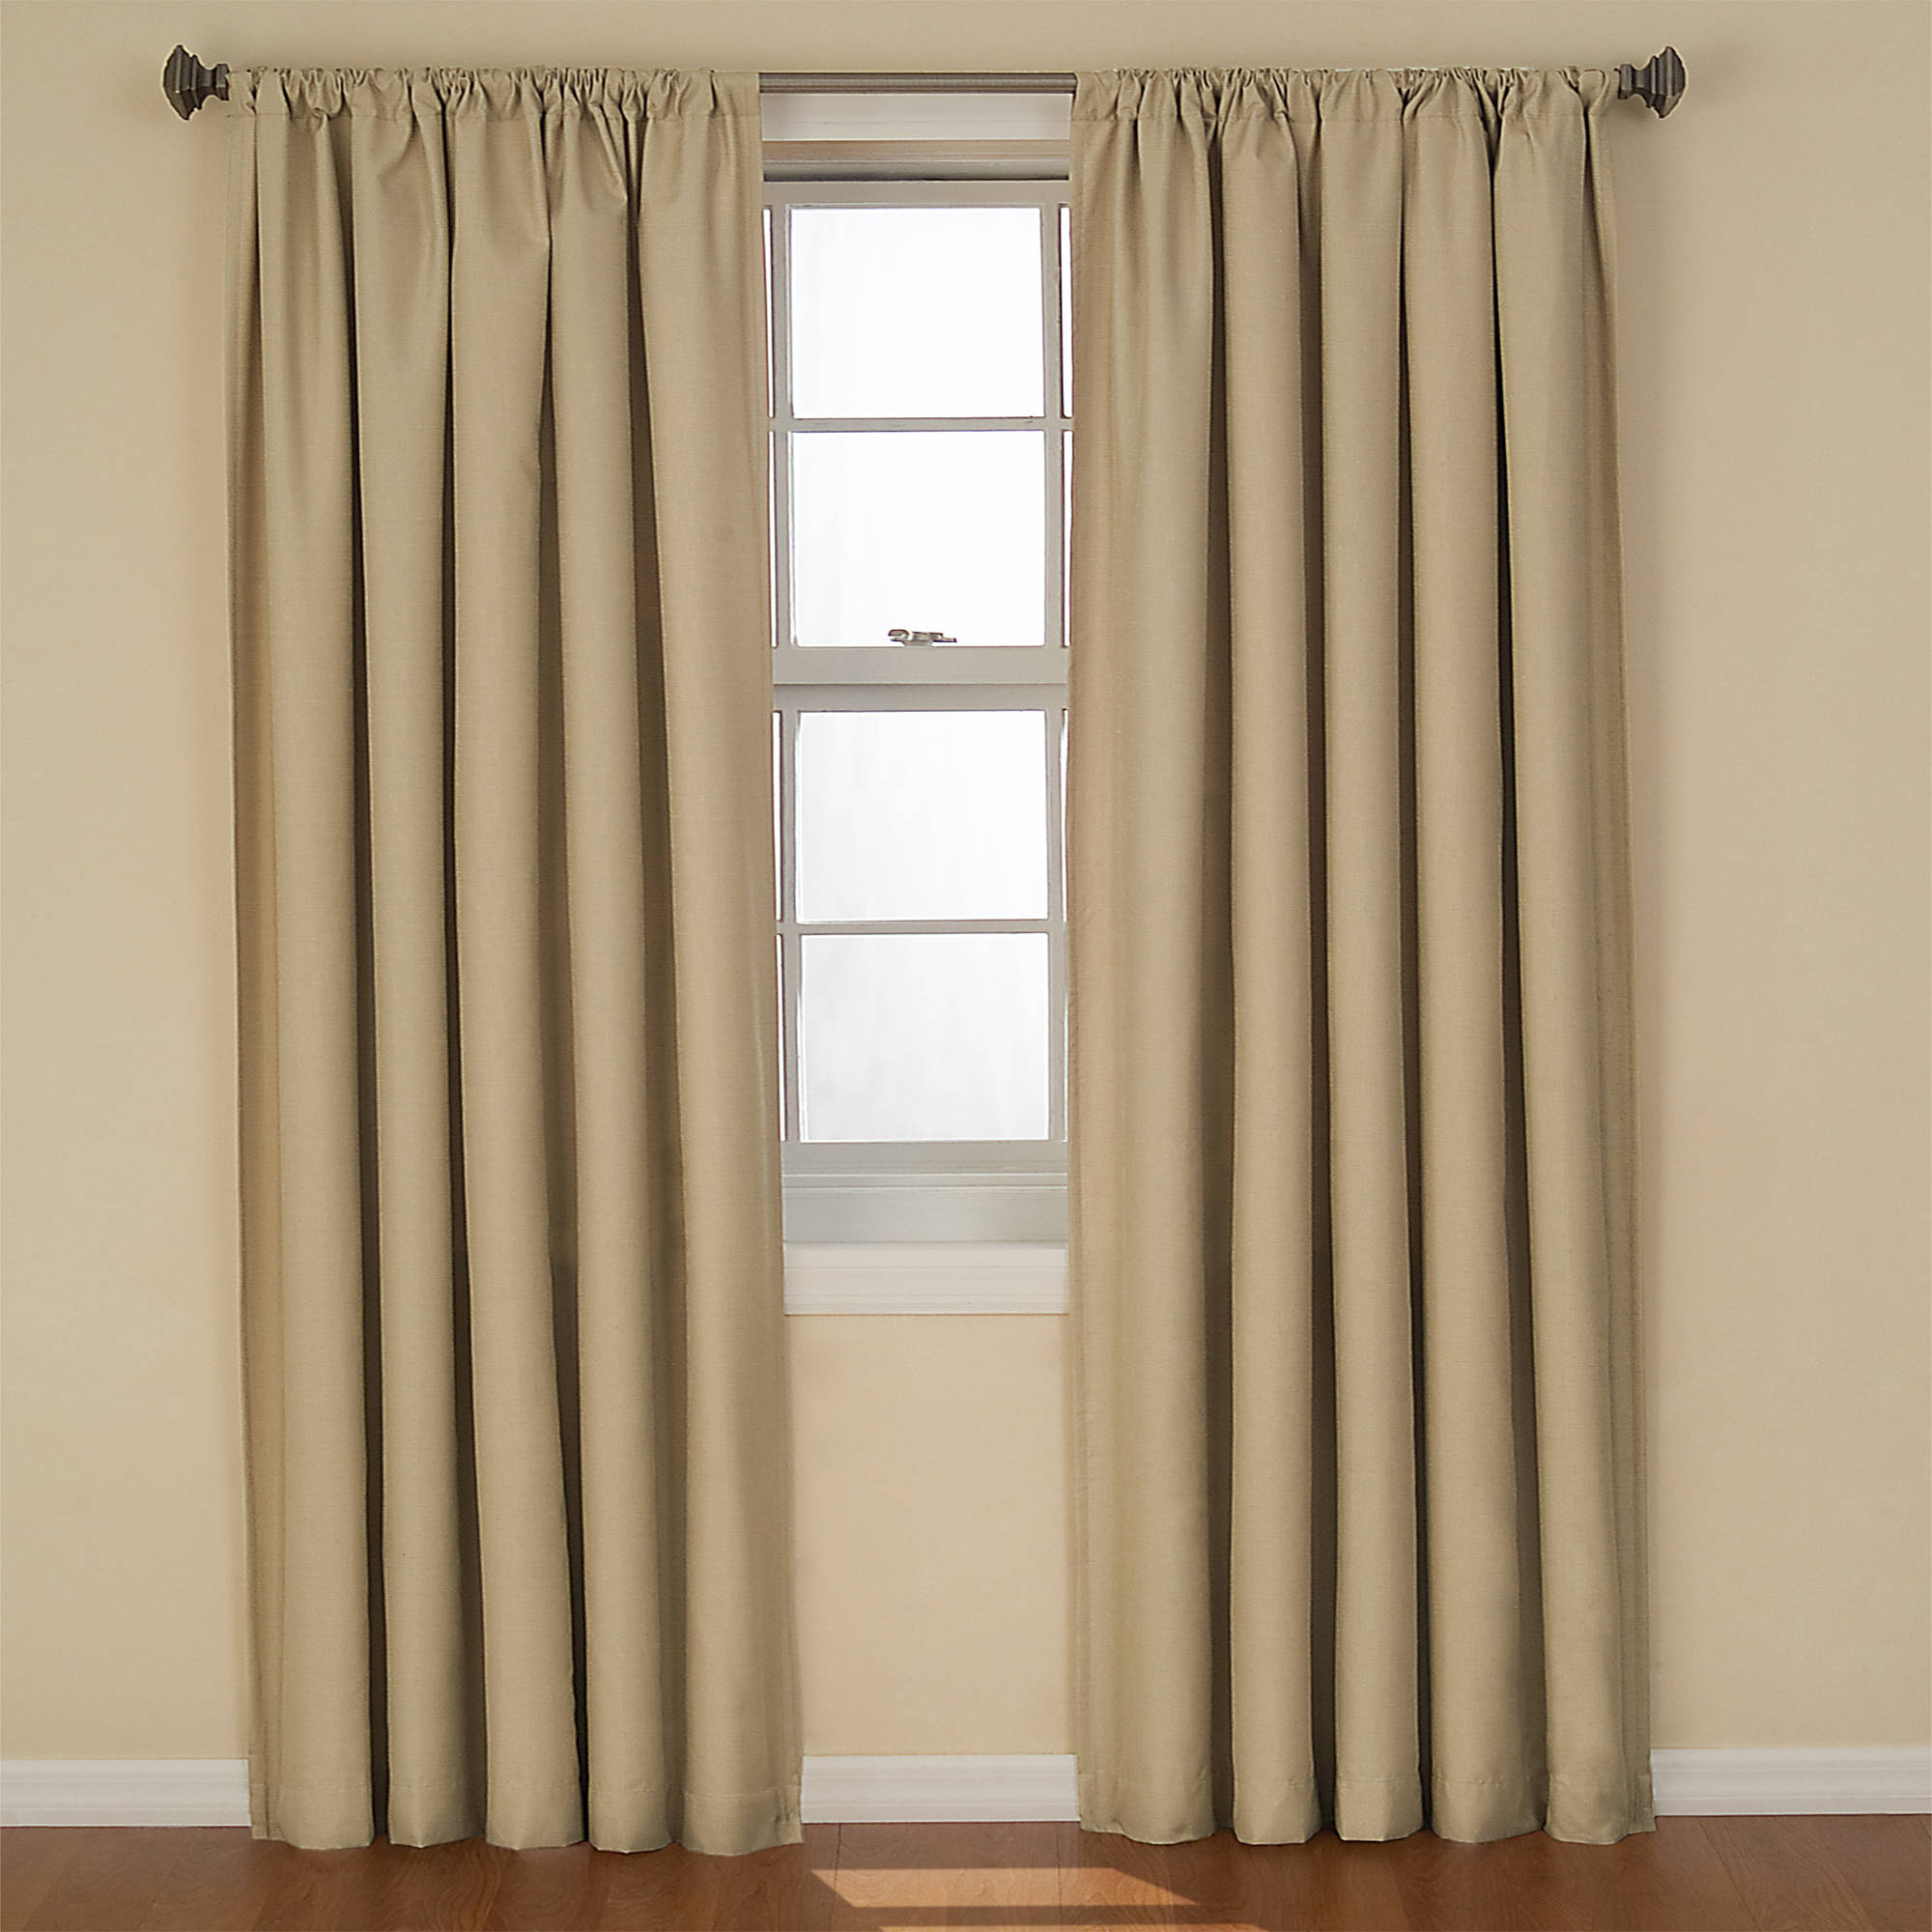 Cheap Blackout Curtains | Inexpensive Blackout Curtains | Curtains Sun Blocking